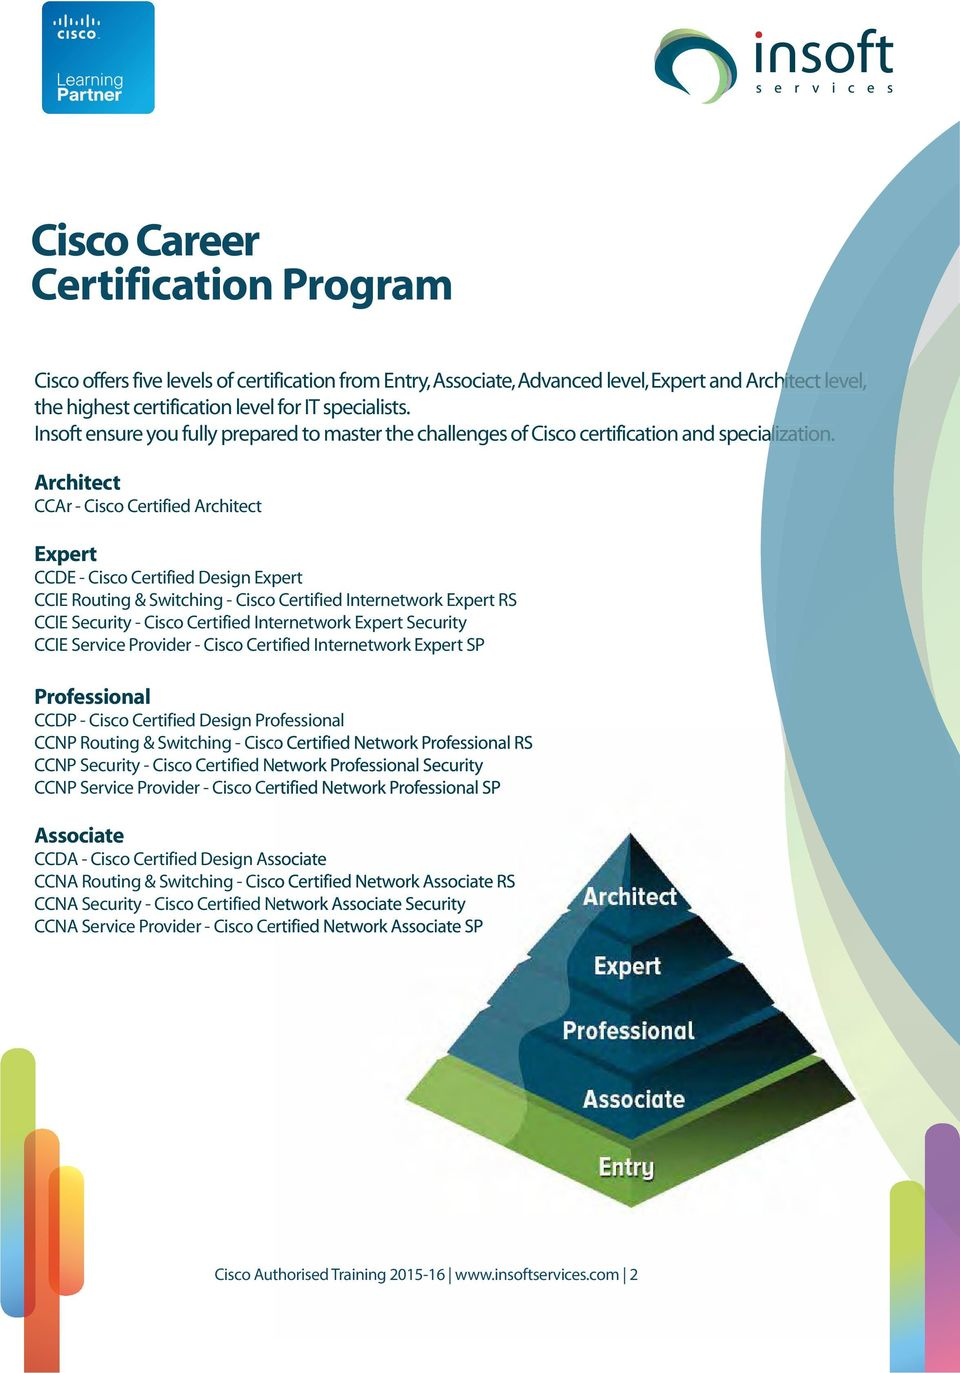 Architect CCAr - Cisco Certified Architect Expert CCDE - Cisco Certified Design Expert CCIE Routing & Switching - Cisco Certified Internetwork Expert RS CCIE Security - Cisco Certified Internetwork